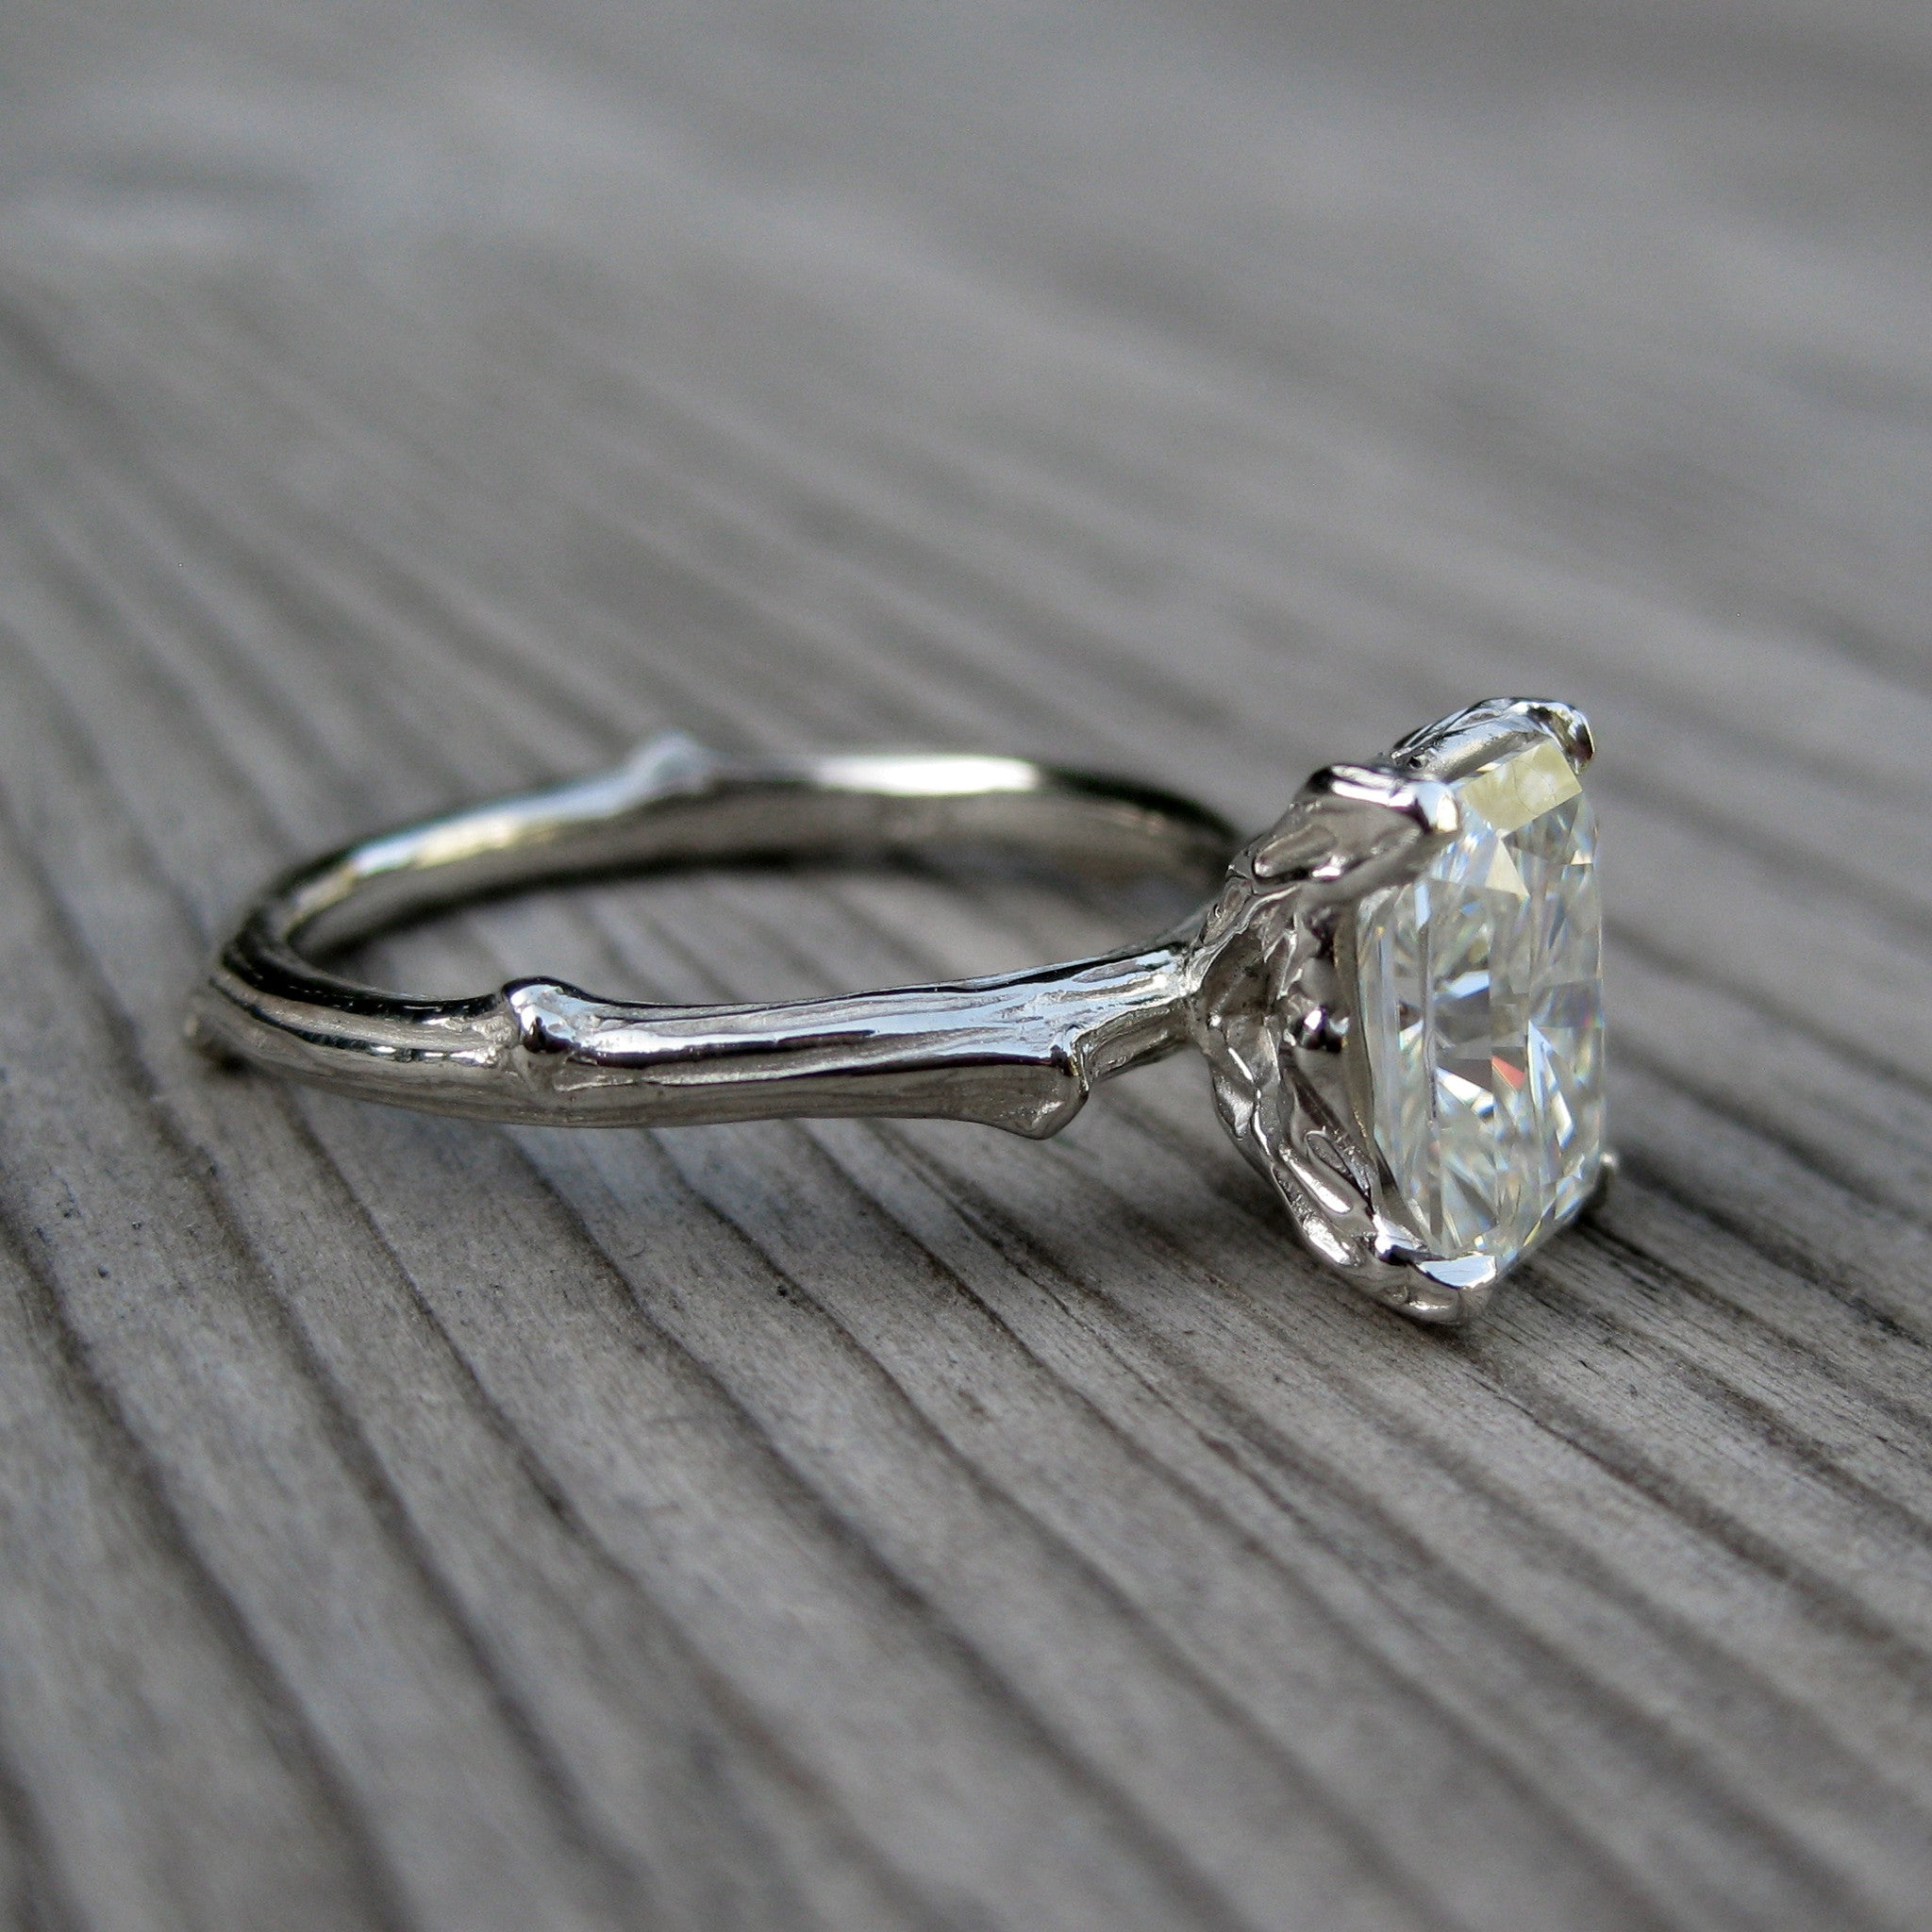 with lovely engagement set rings the oregon sunstone designs branch series mountain inspired store wedding nature matching